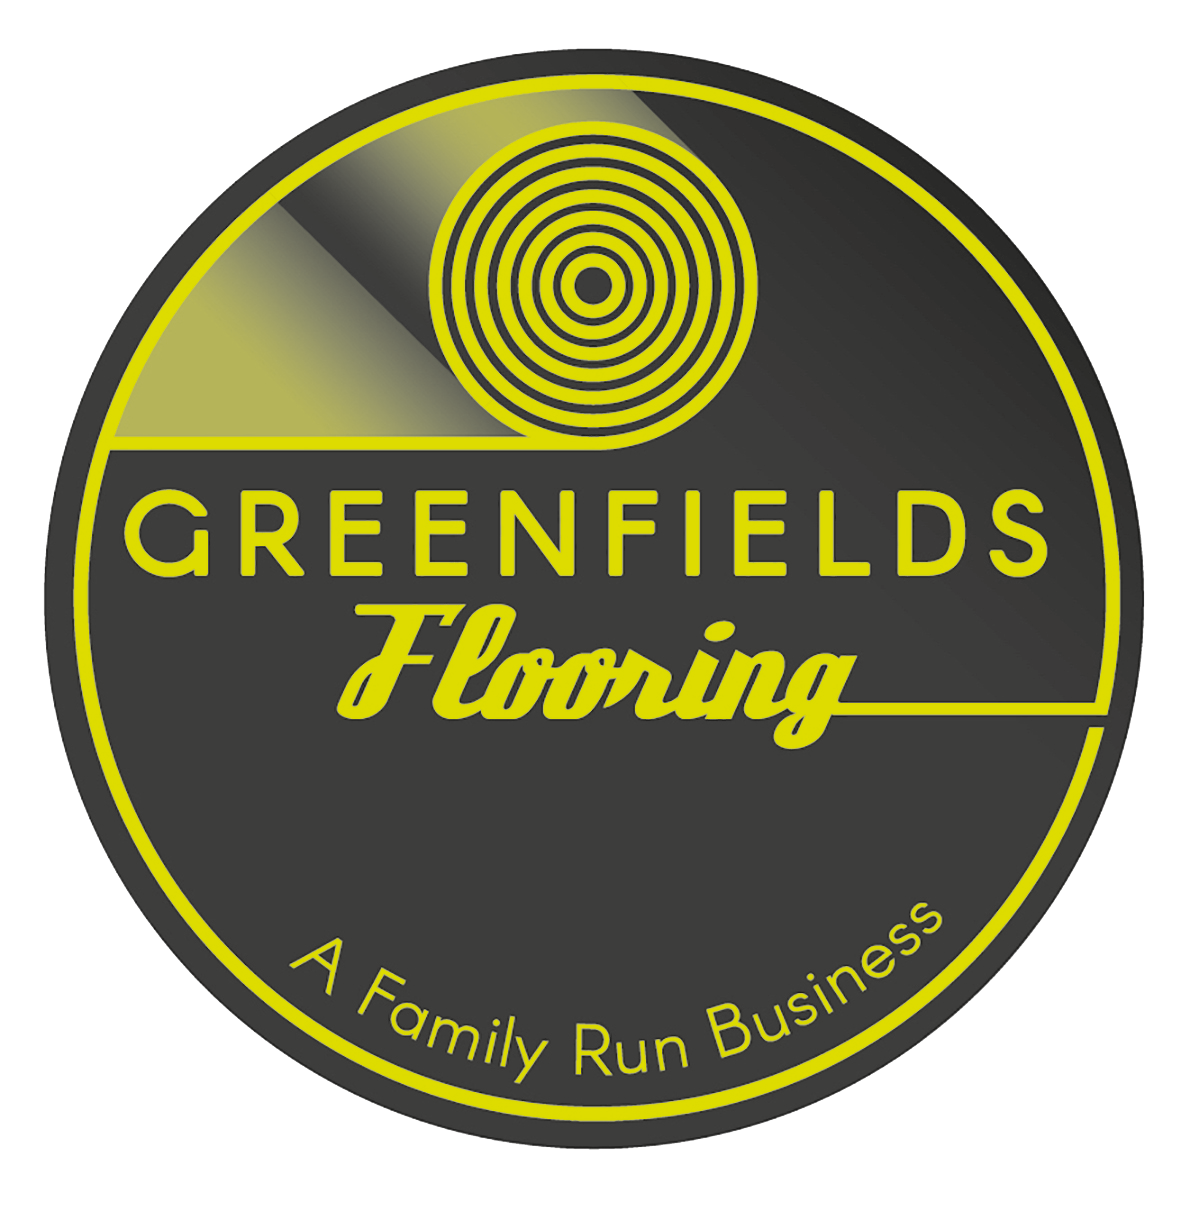 Greenfields Flooring